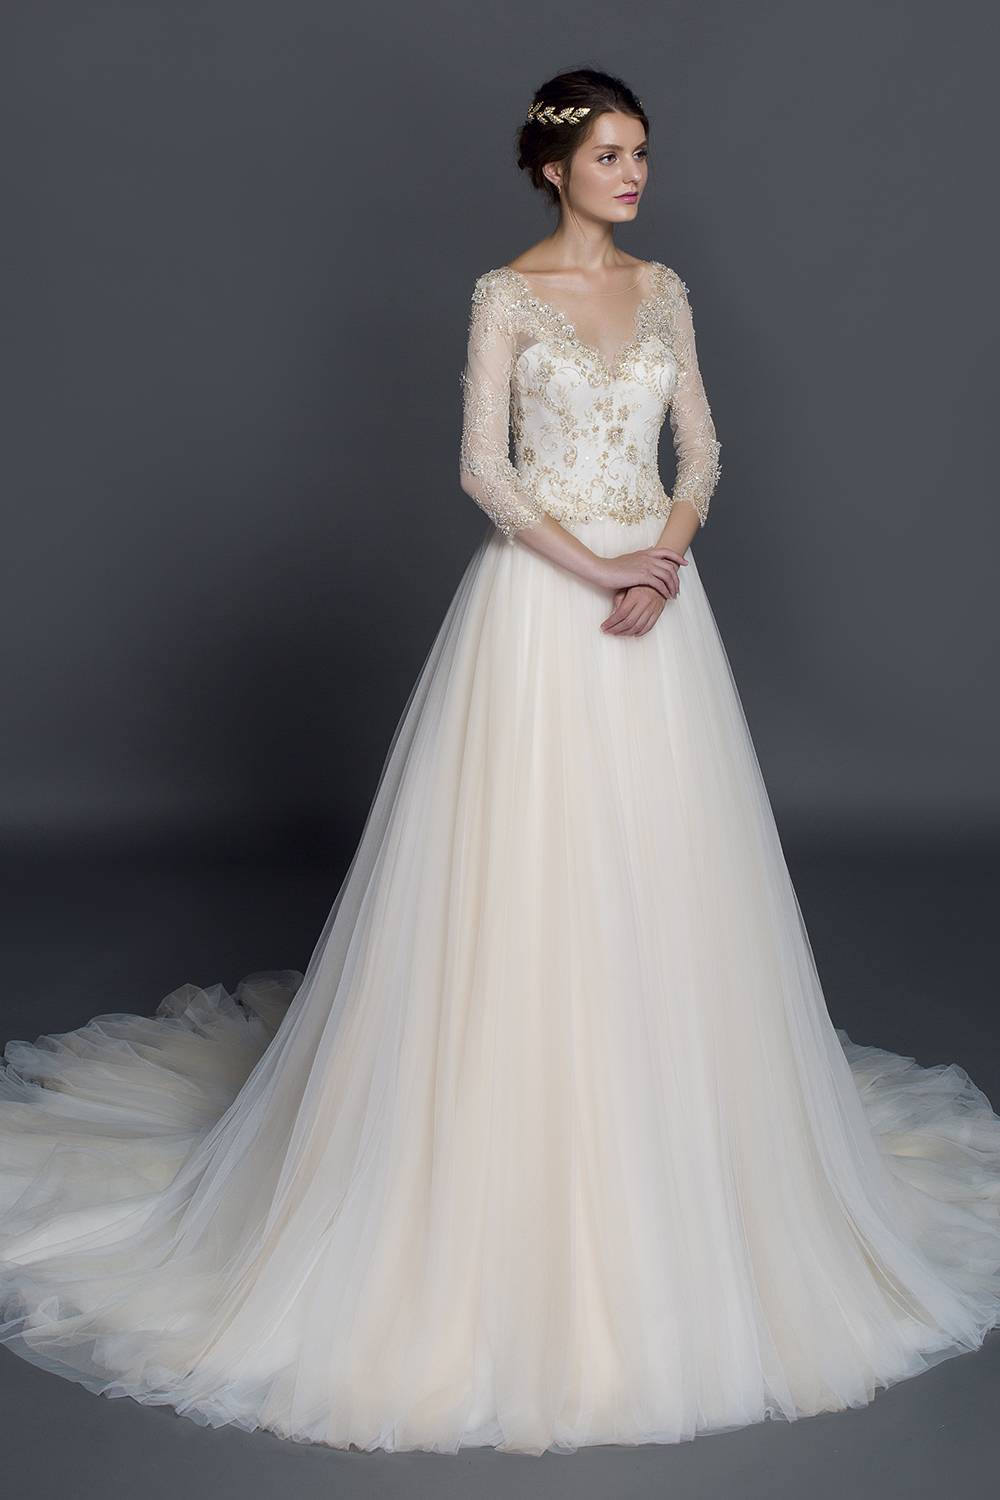 Stunning Champagne Lace Appliqued Ball Gown Winter Wedding Dress From Curvy Brides